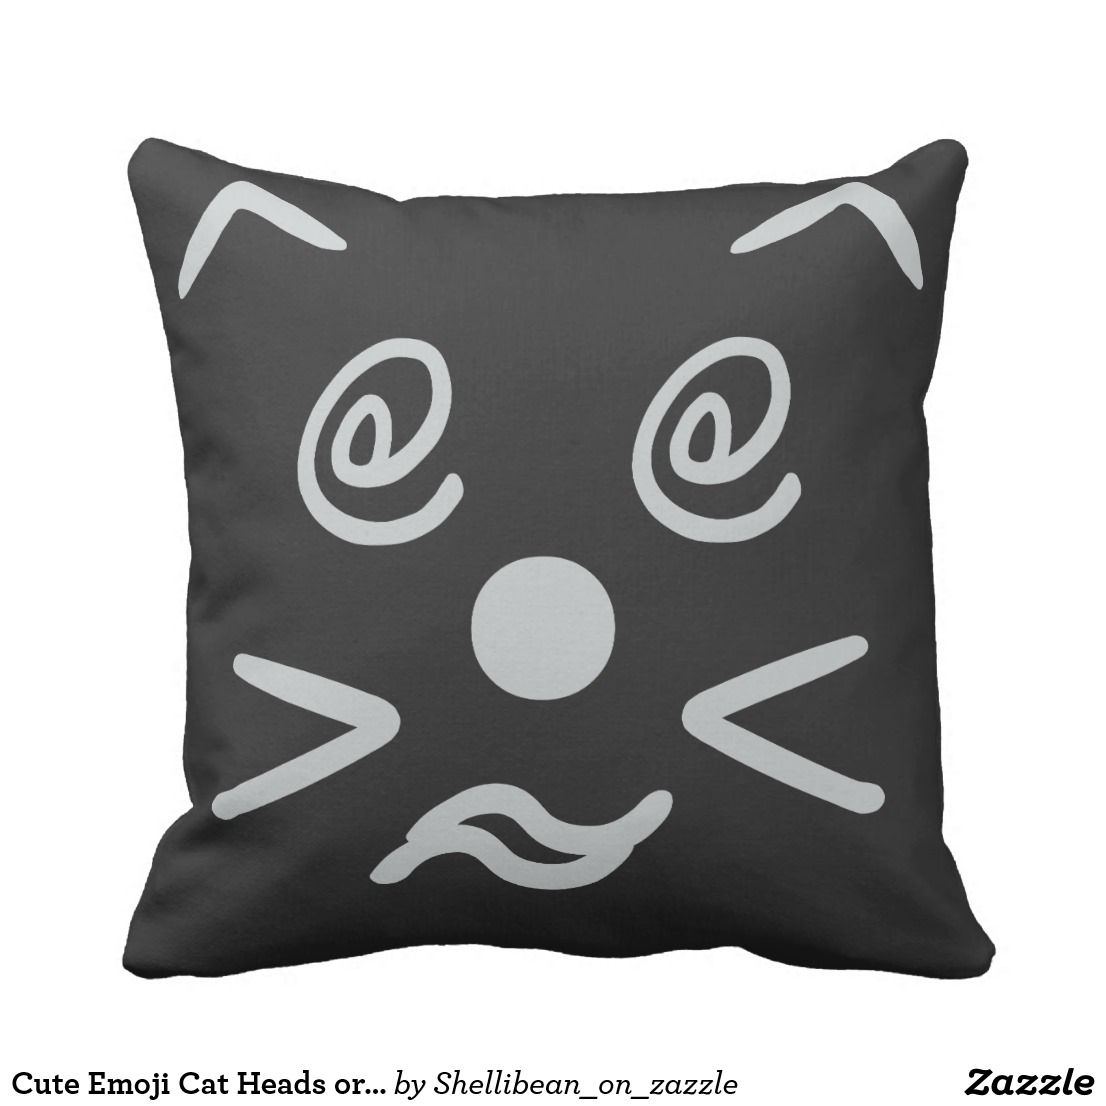 Cute emoji cat heads or tails throw pillow emoji pillows